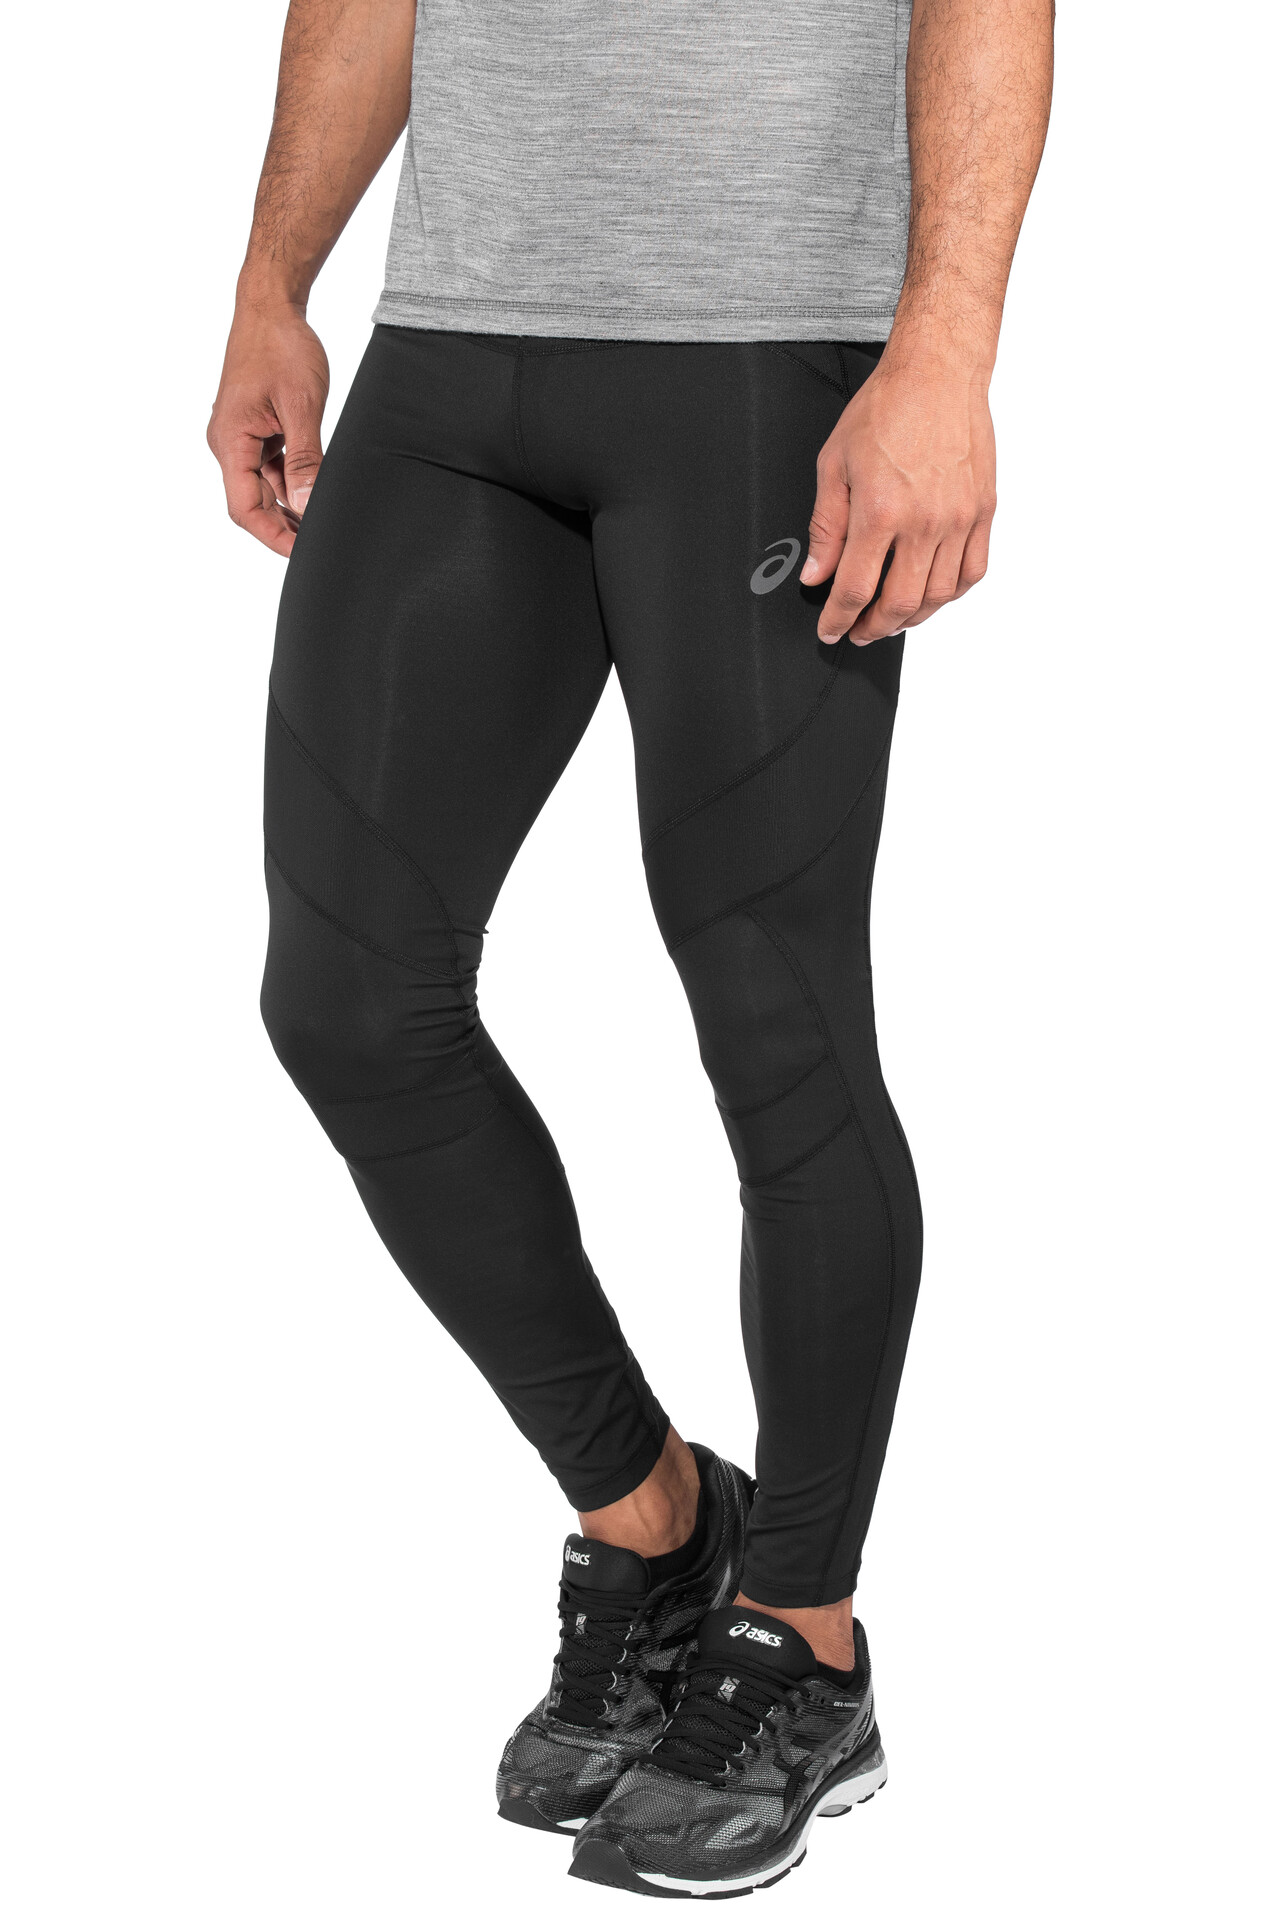 asics lange tight leg balance heren